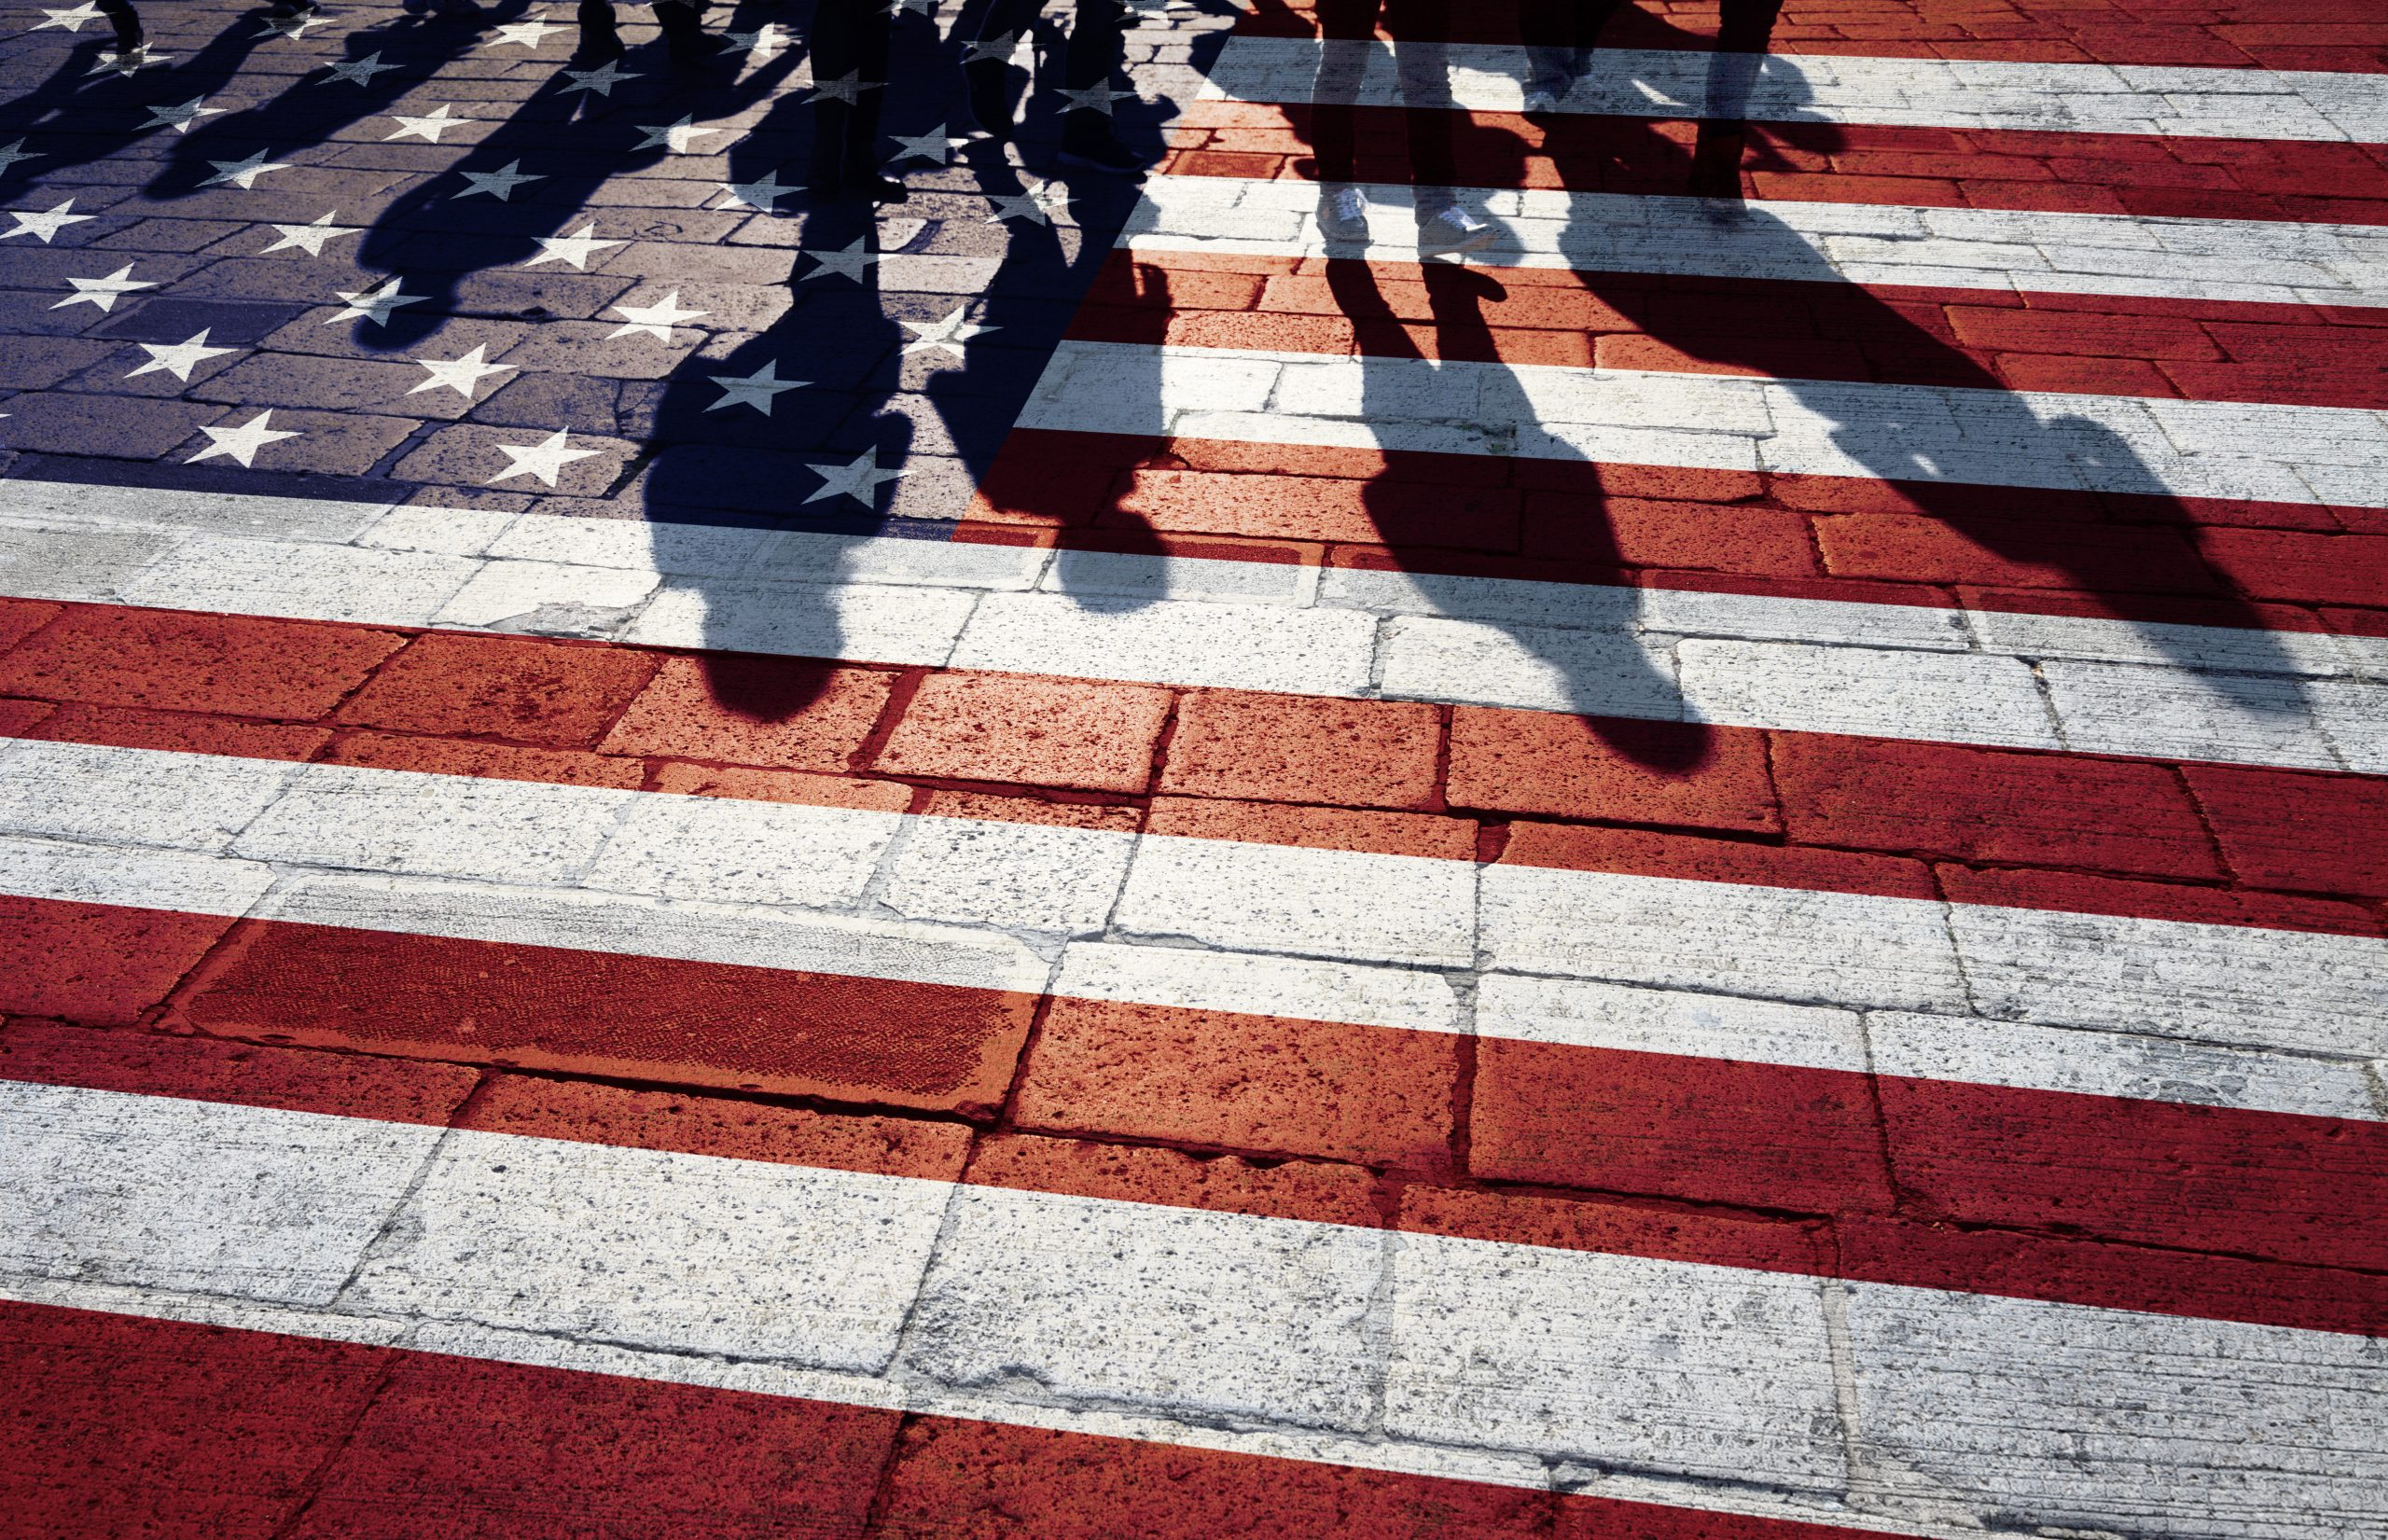 Tucson Immigration Lawyer American flag with immigrant shadows